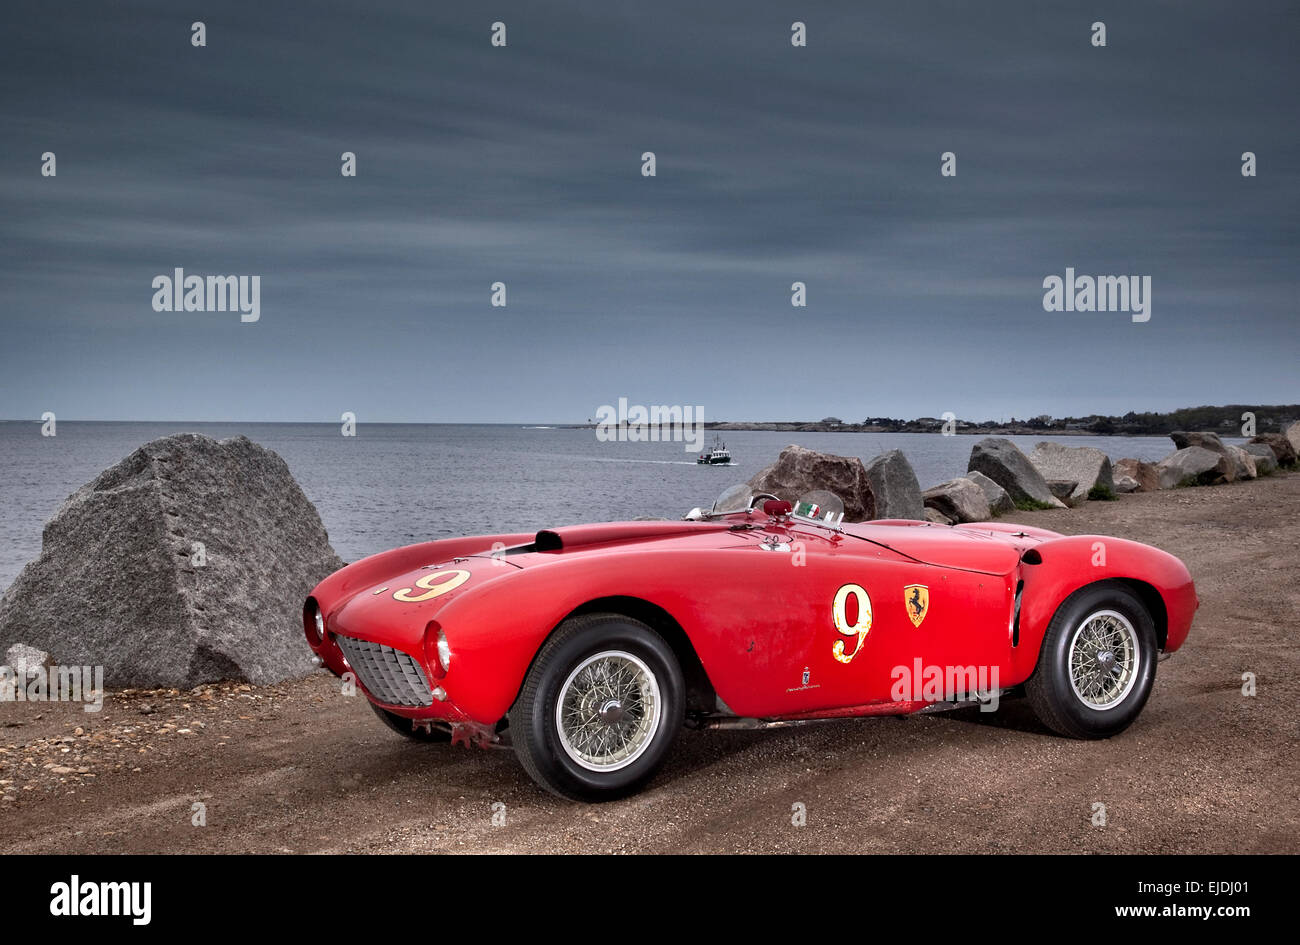 1953 Ferrari 375 MM Pinin Farina Spider sports racing car - Stock Image